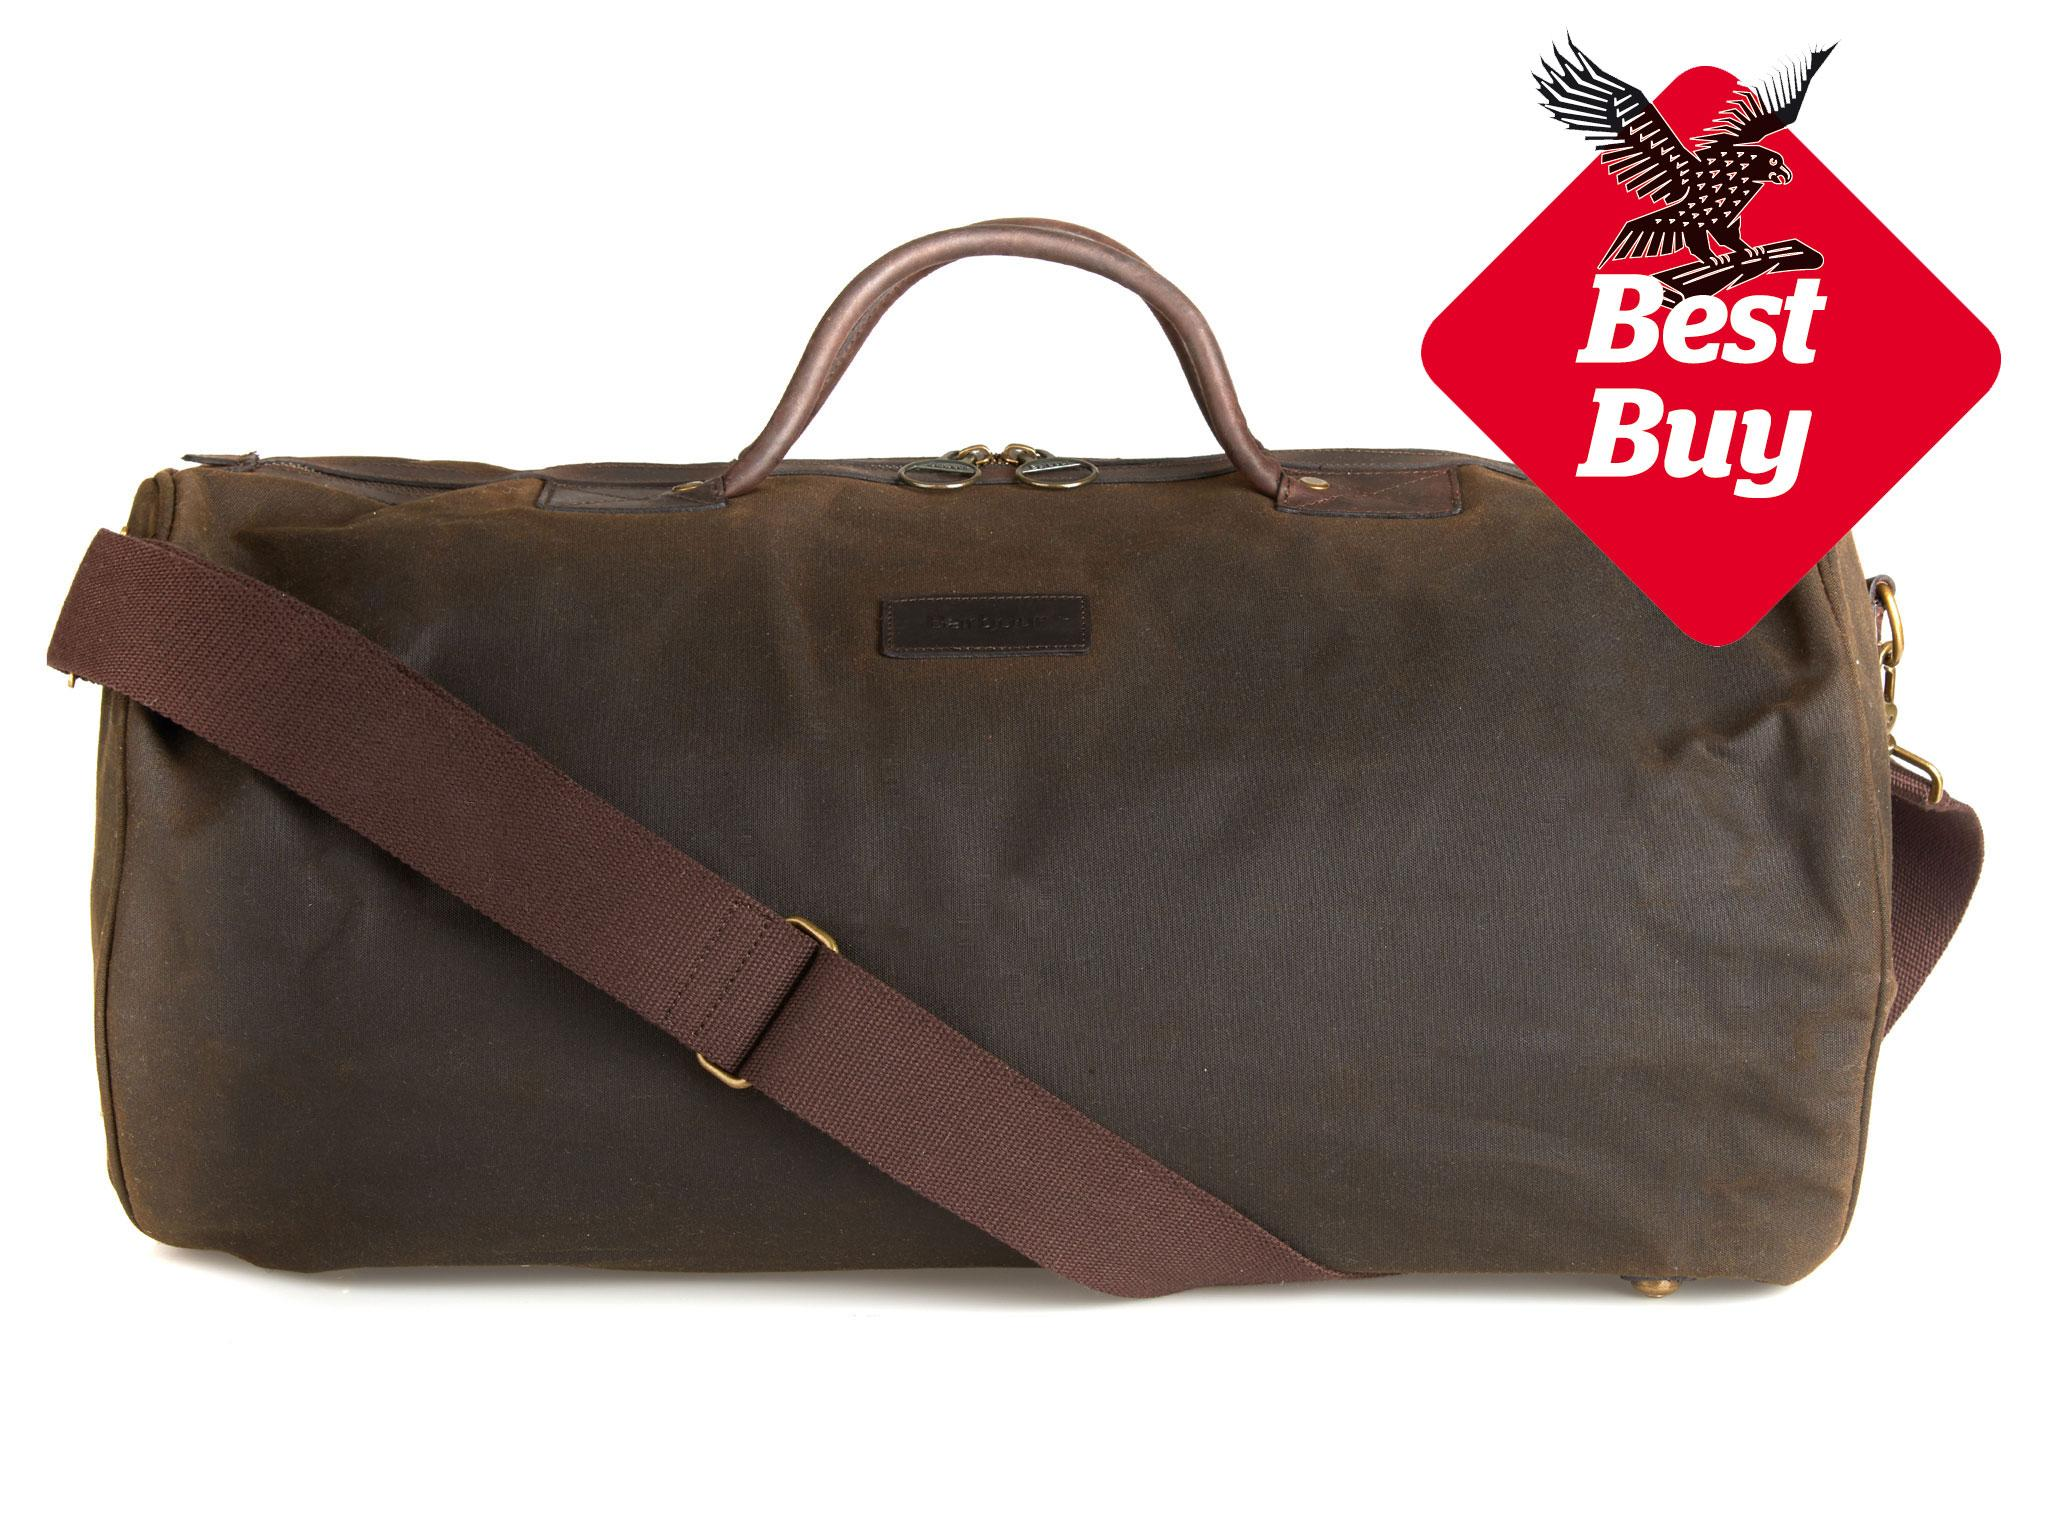 b174f2d6f7 This unisex holdall from British brand Barbour is ideal for any overnight  stay. Made of waxed cotton